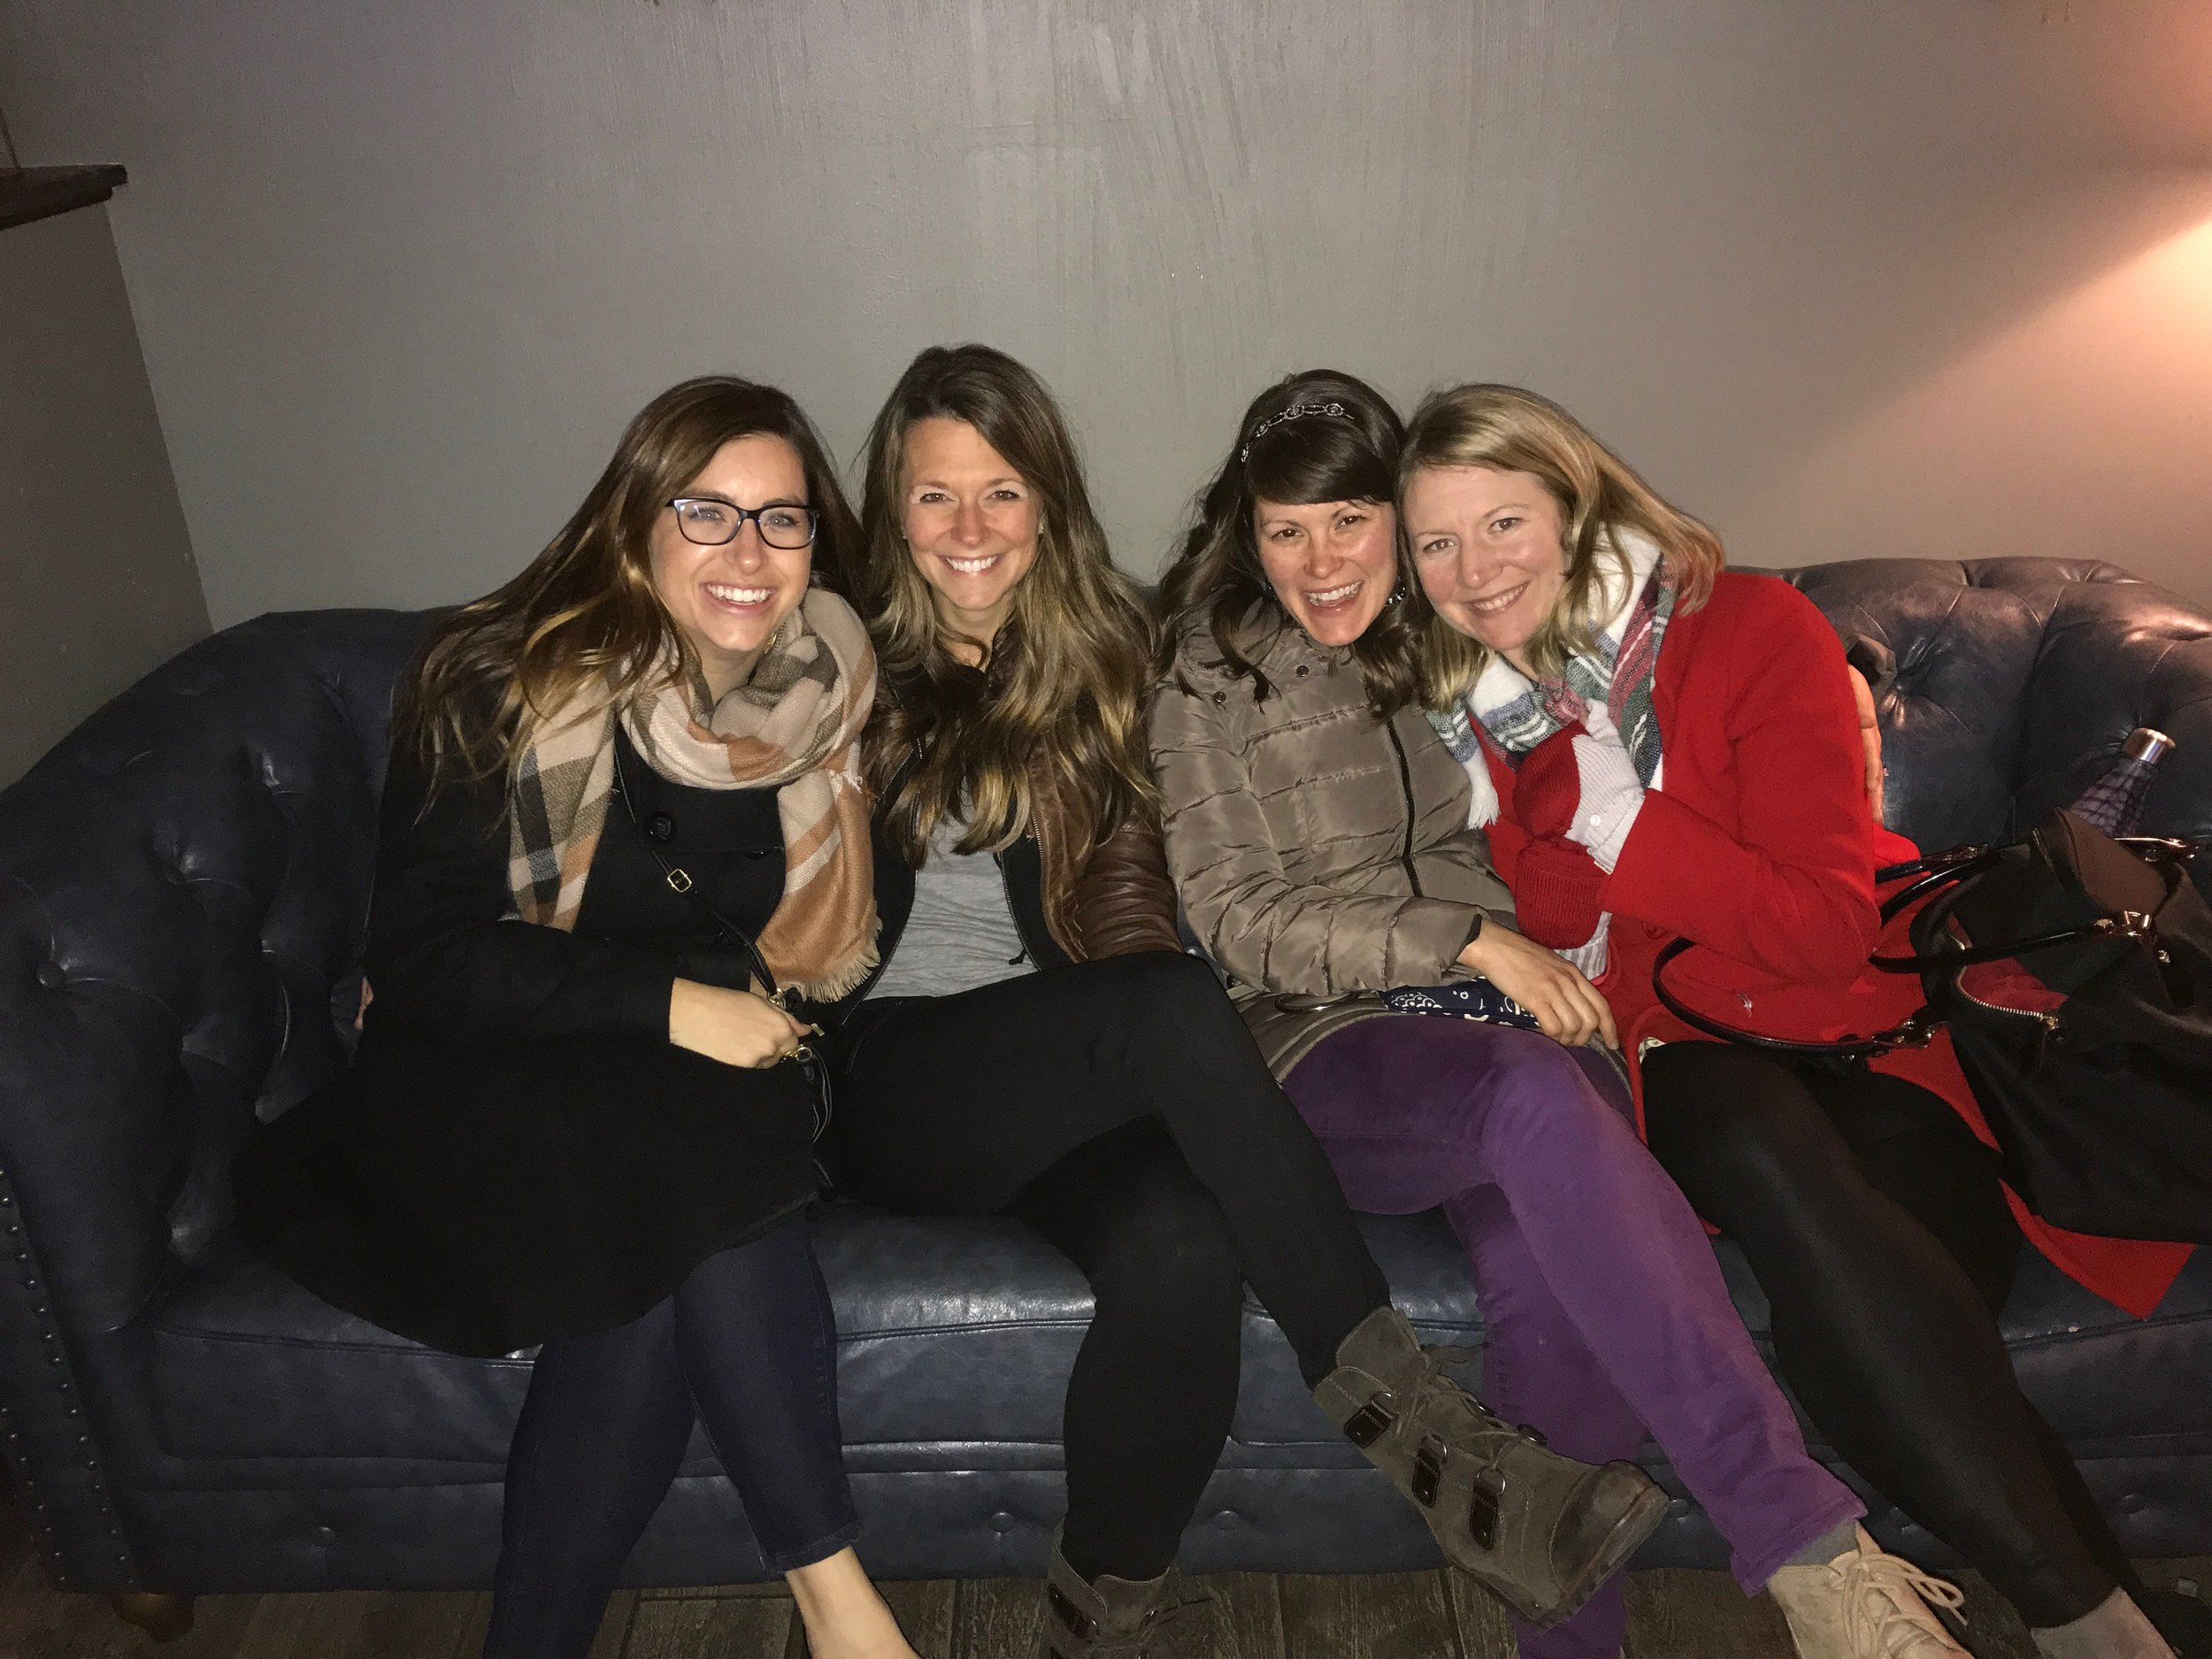 Kelly, Charity, me, and Lauren. They've been making me a better person for years.